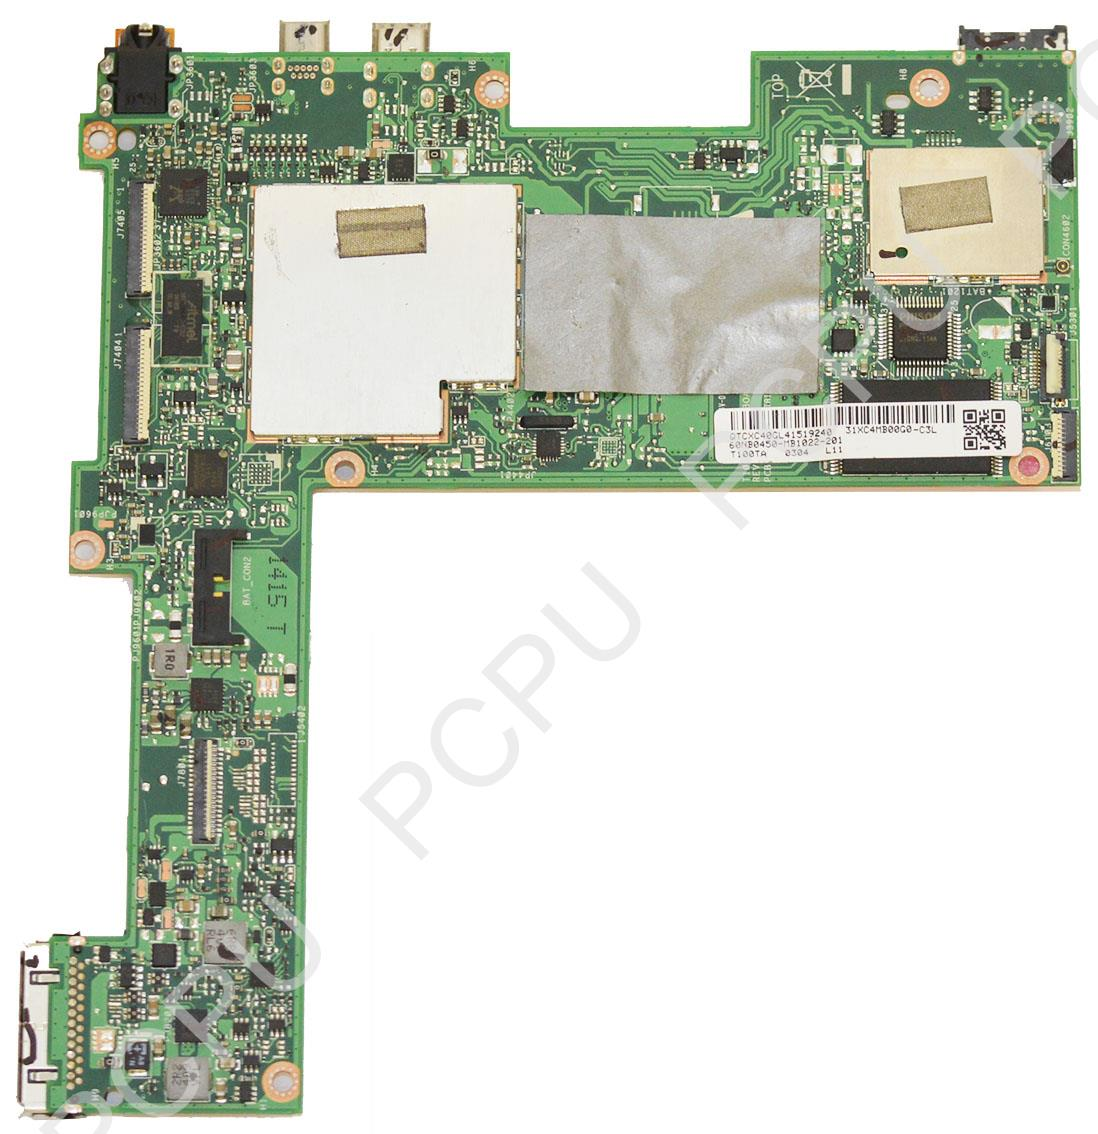 60NB0450-MB1022 Asus Transformer T100TA Tablet Motherboard 32GB w/ Intel Atom Z3740 1.33Ghz CPU